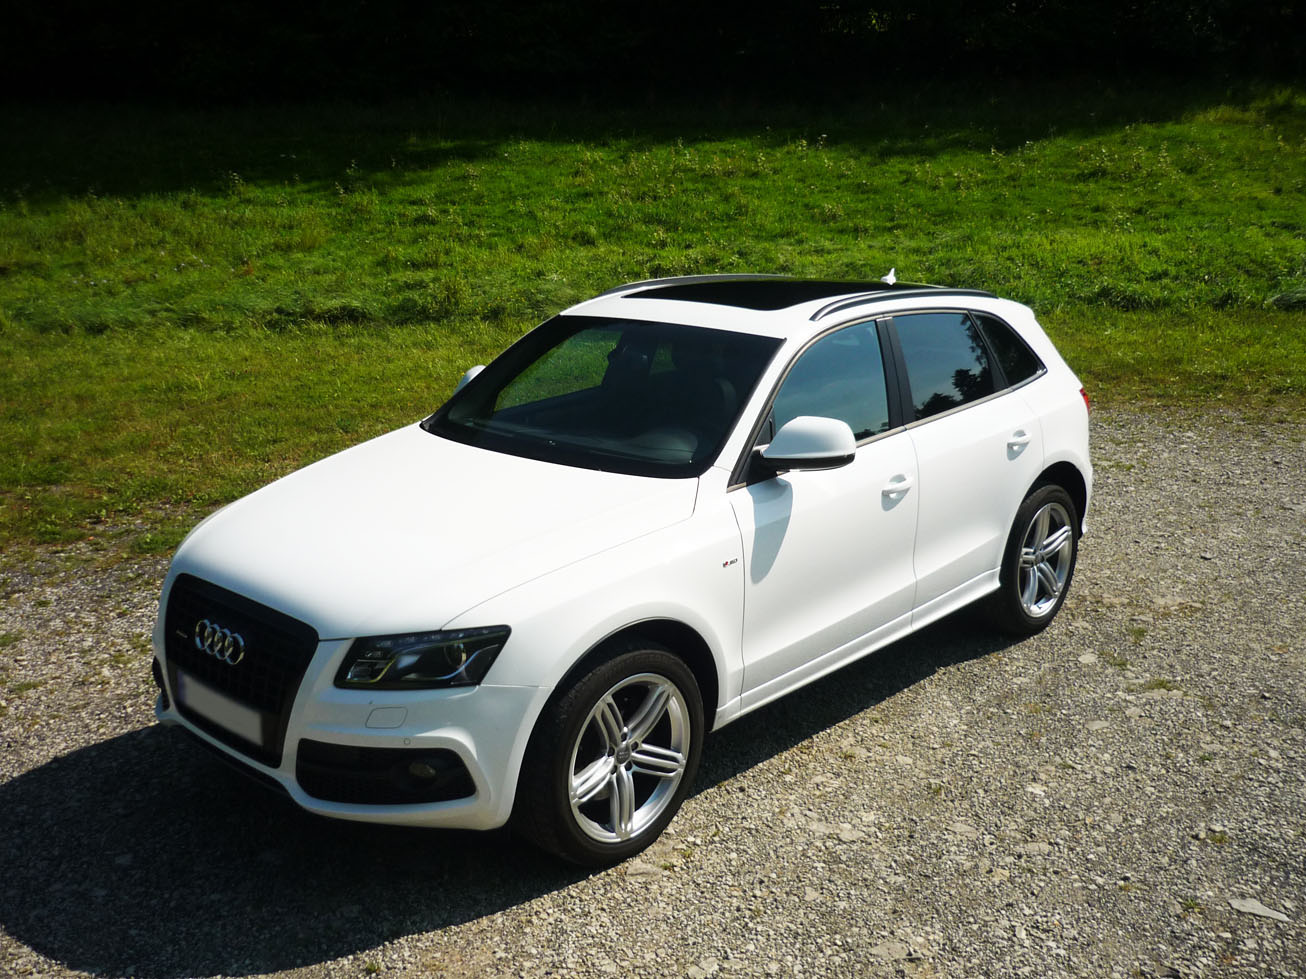 audi q5 3 0 tdi quattro s tronic 1 jpg details of cars on details of. Black Bedroom Furniture Sets. Home Design Ideas